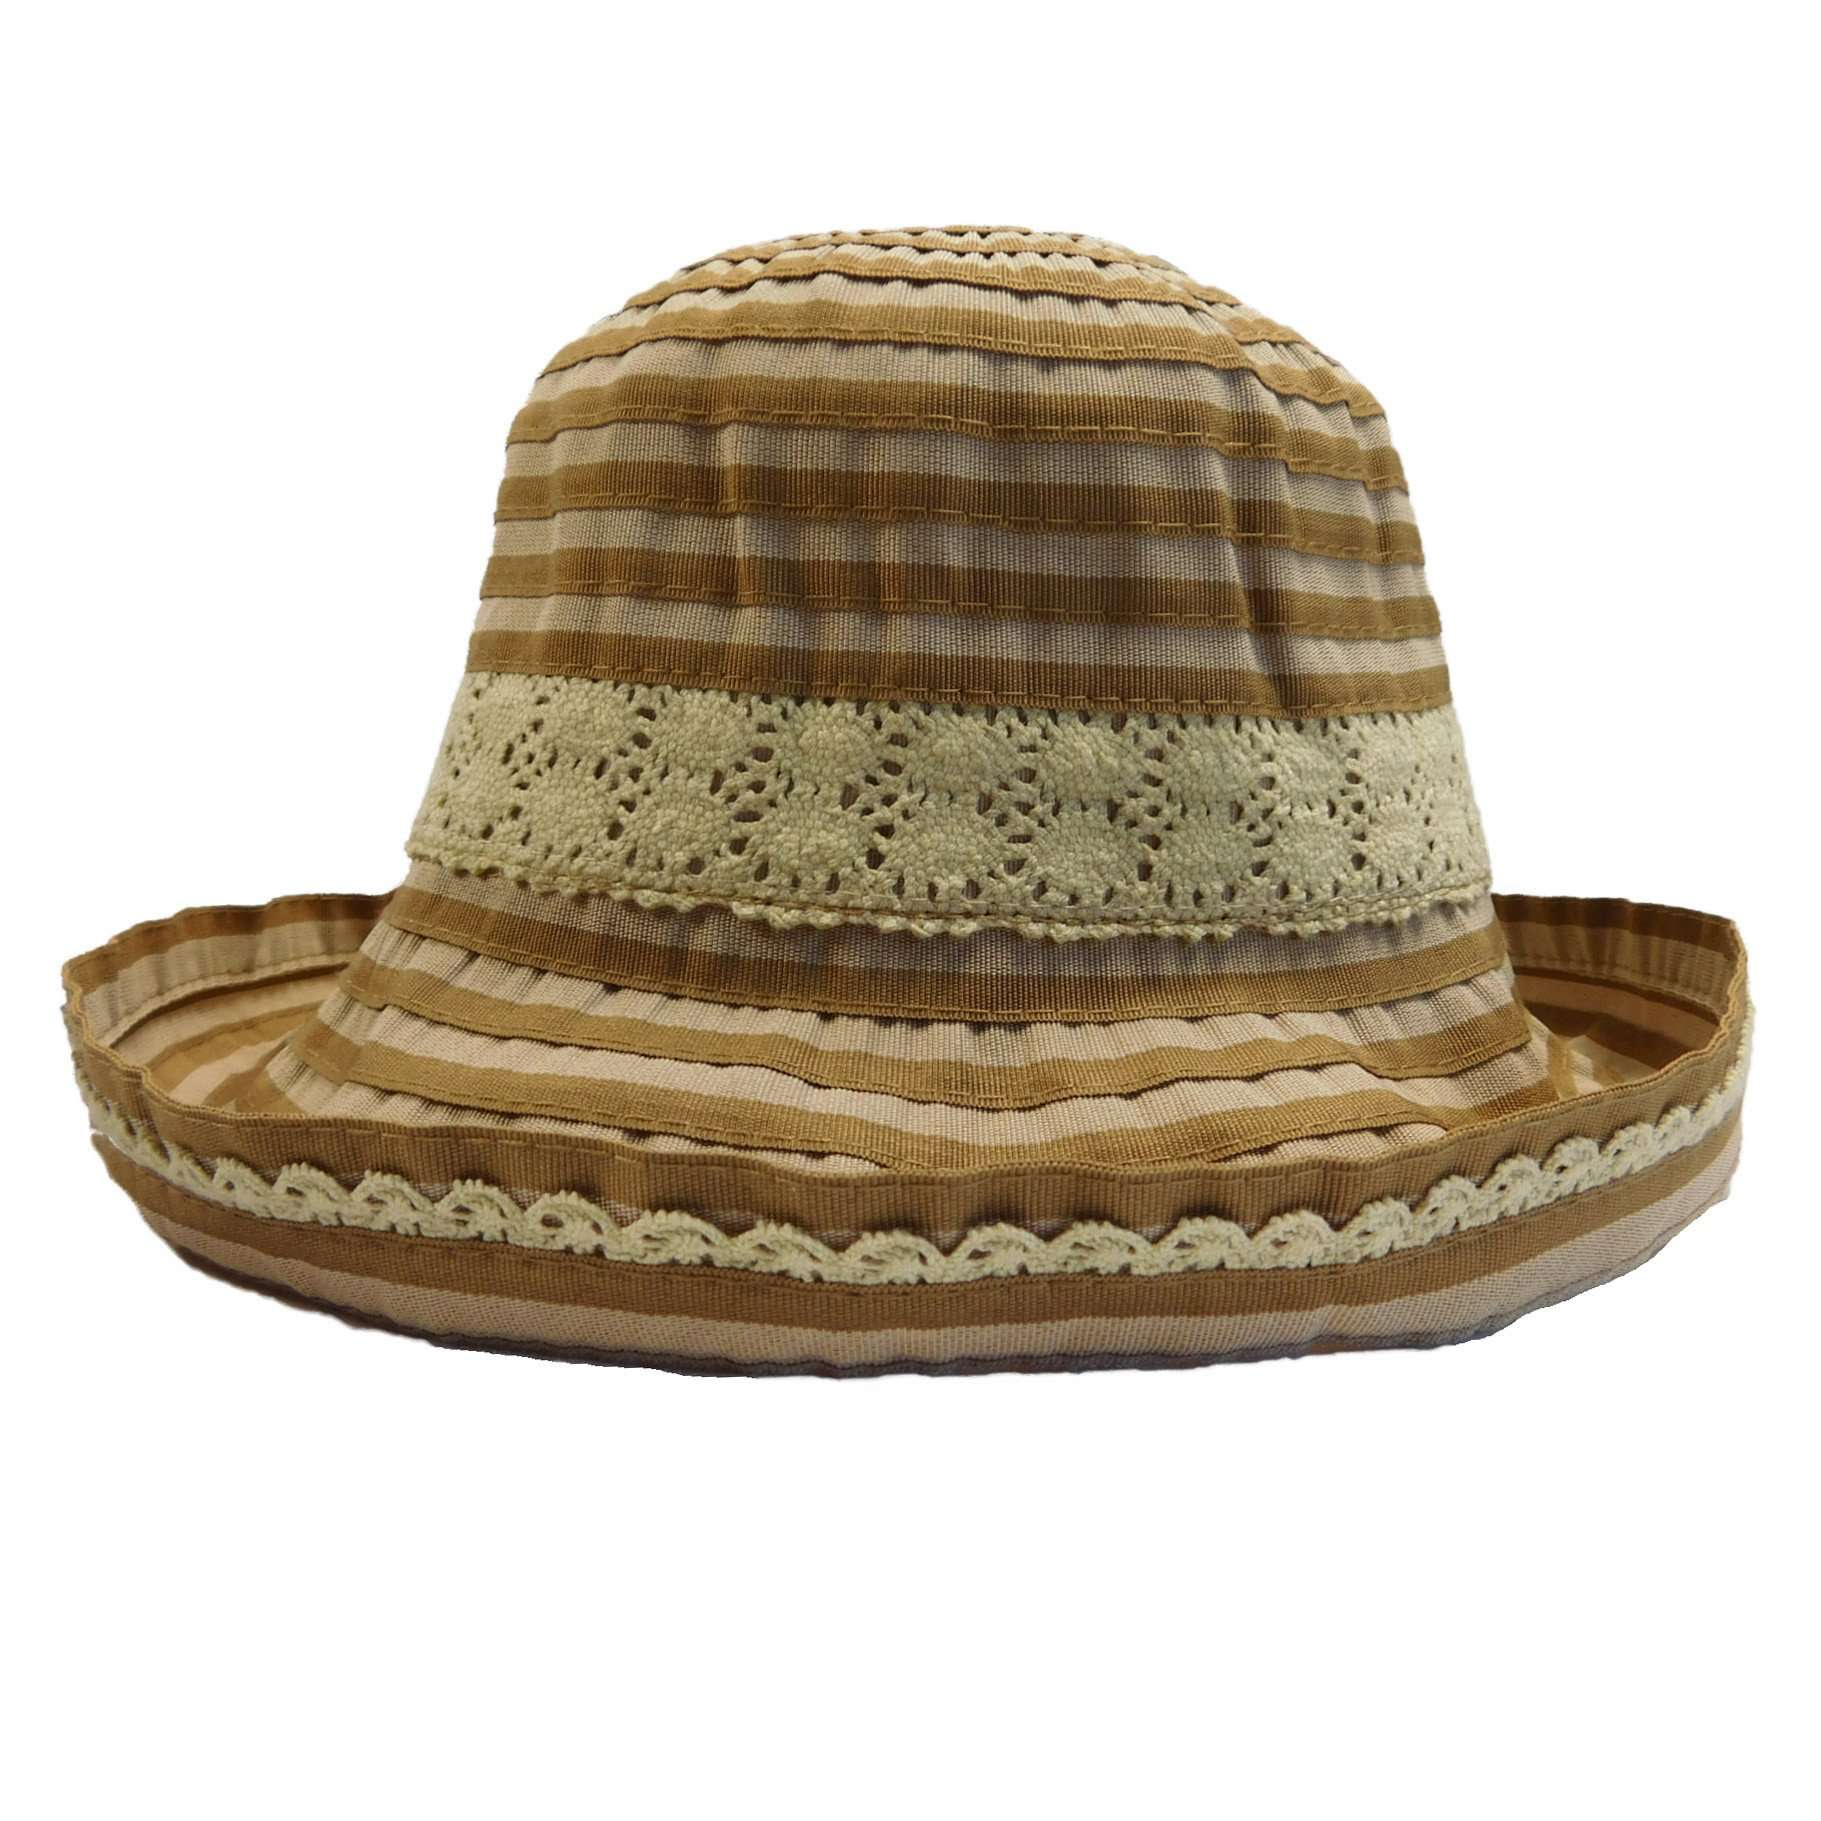 Striped Ribbon Hat with Lace Detail - SetarTrading Hats